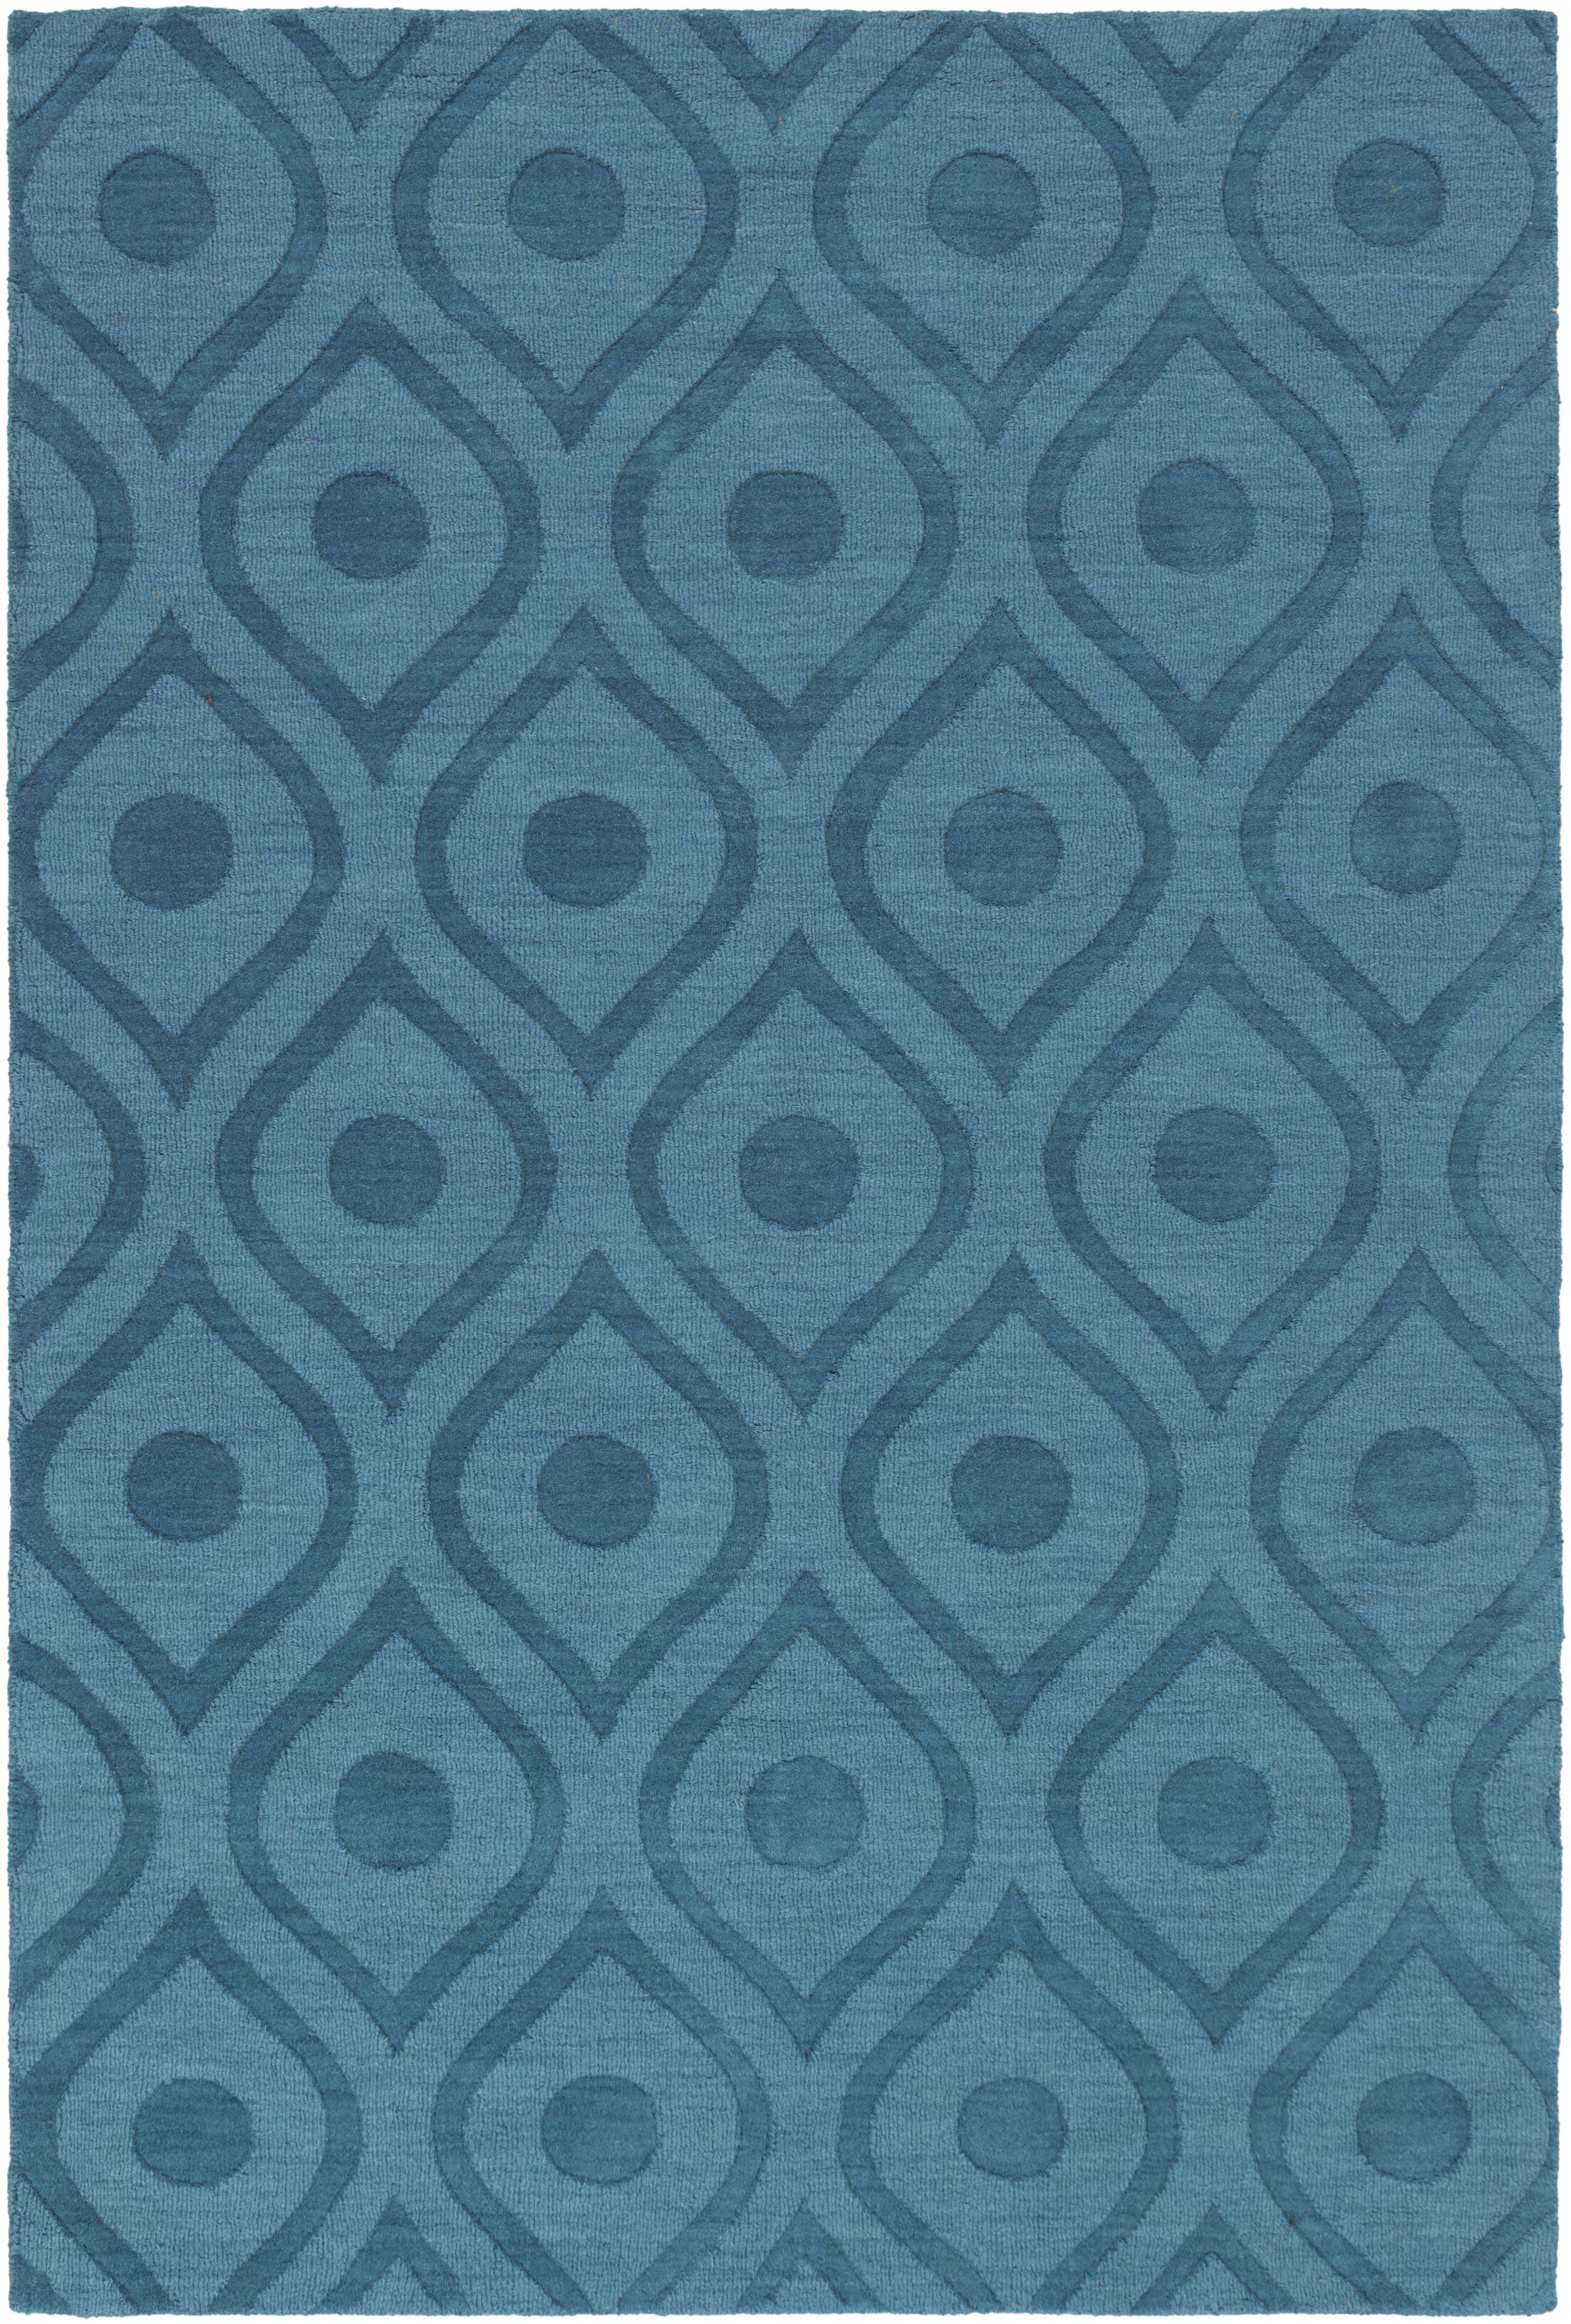 Castro Hand Woven Wool Teal Area Rug Rug Size: Rectangle 9' x 12'